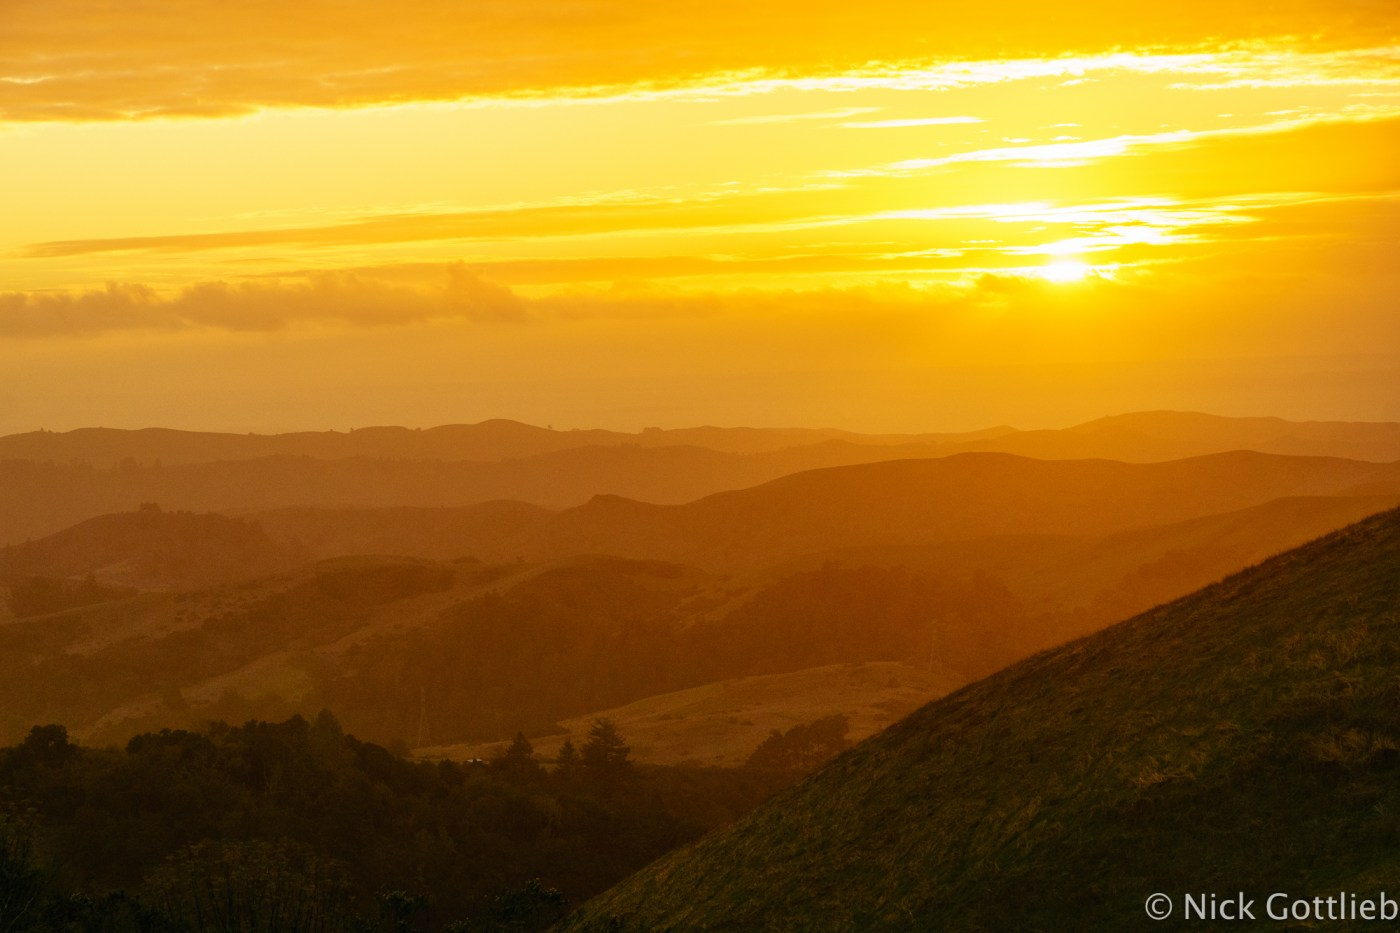 Sunset from Windy Hill on Skyline Boulevard. Hard to believe you're just a few minutes from a bustling metropolis when you're winding through these beautiful hills on the peninsula.